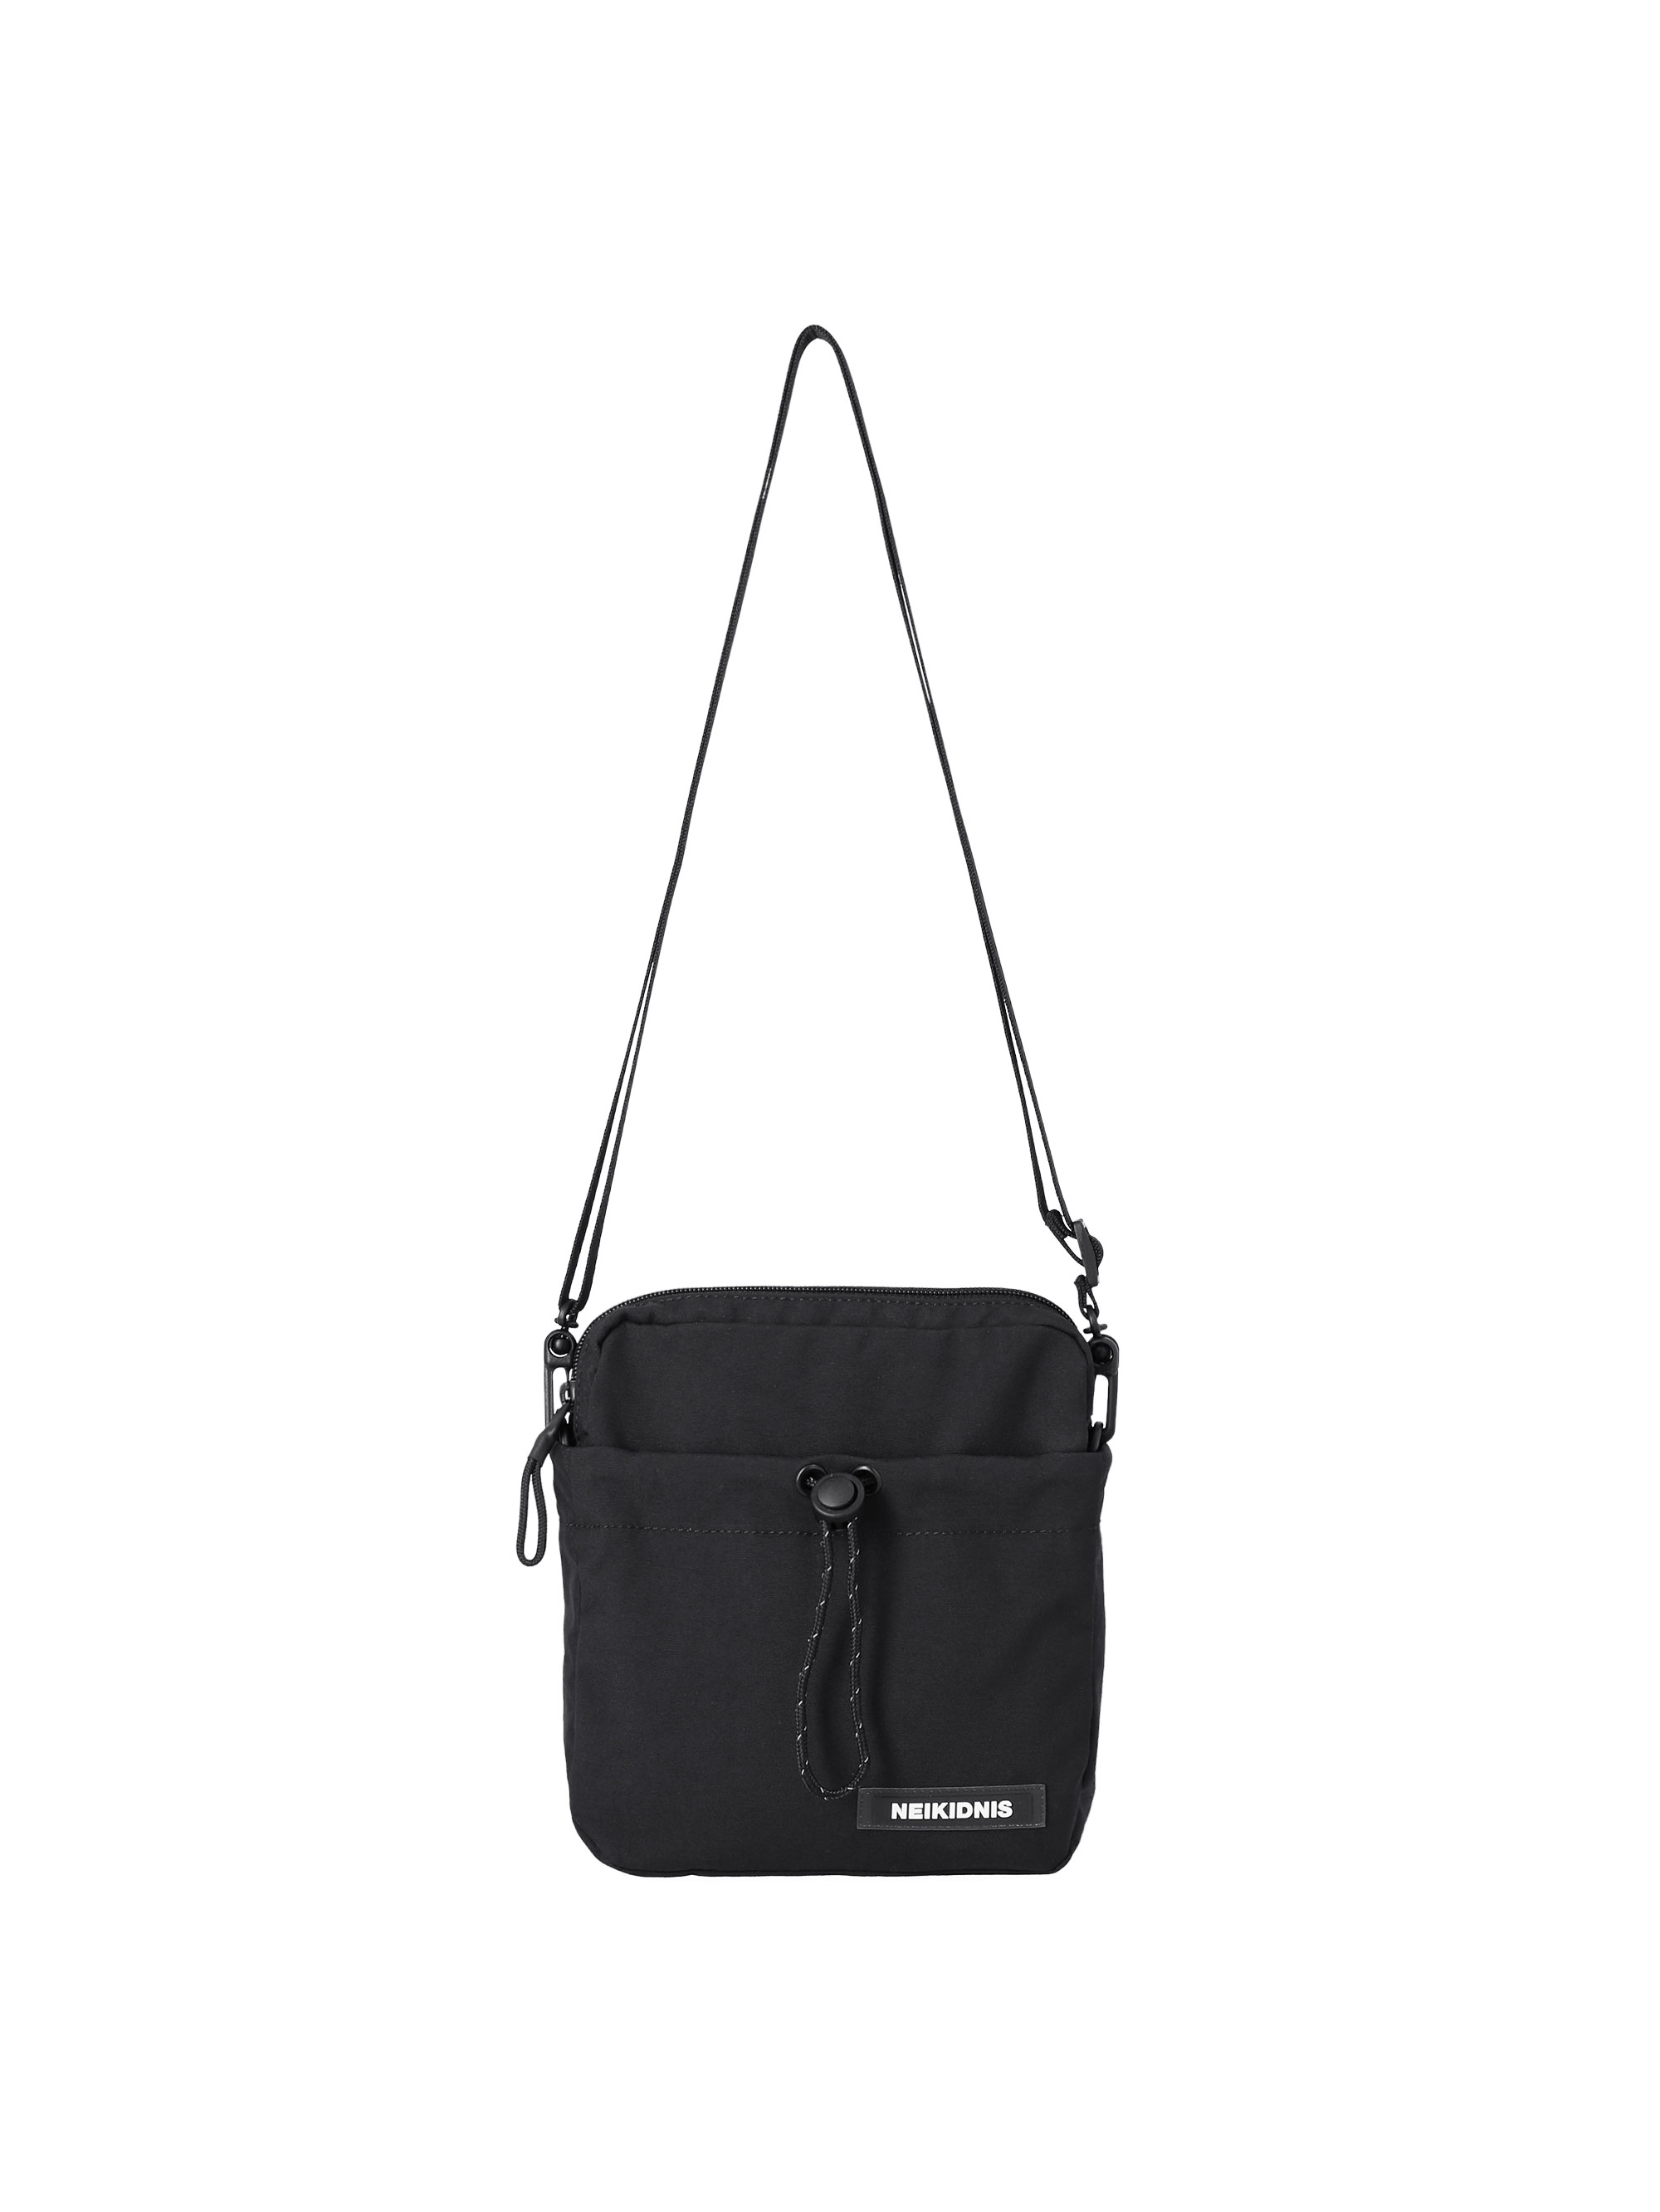 LIGHT WEIGHT 3WAY MINI BAG / BLACK